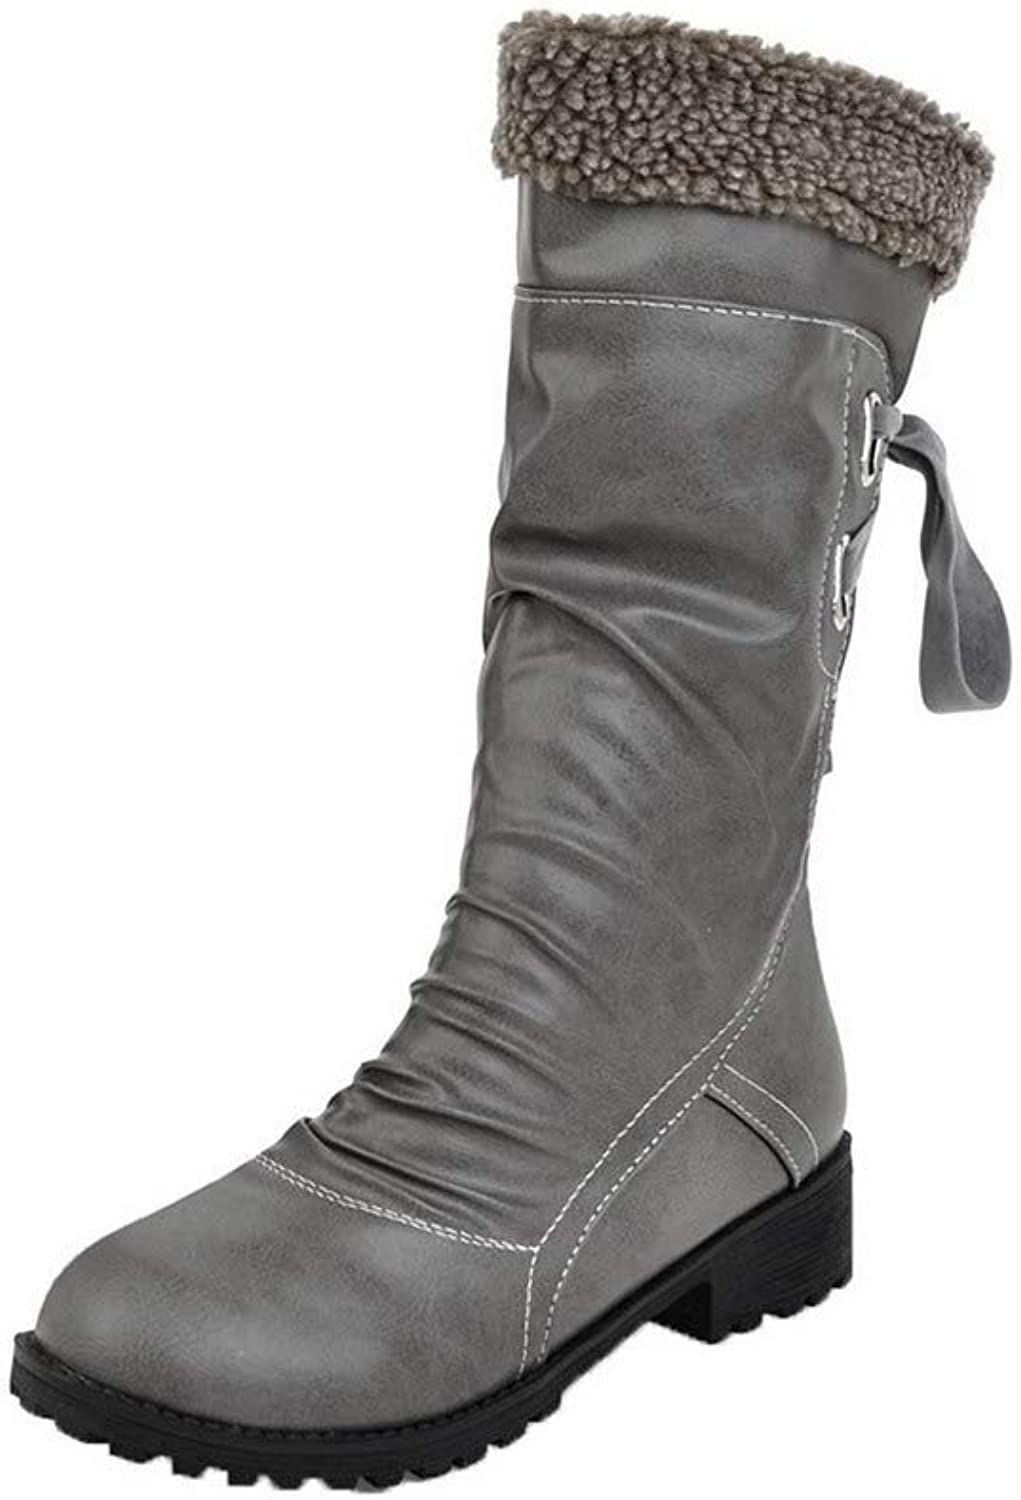 WeiPoot Women's Low-Heels Solid Round-Toe Pu Lace-Up Boots, EGHXH017314